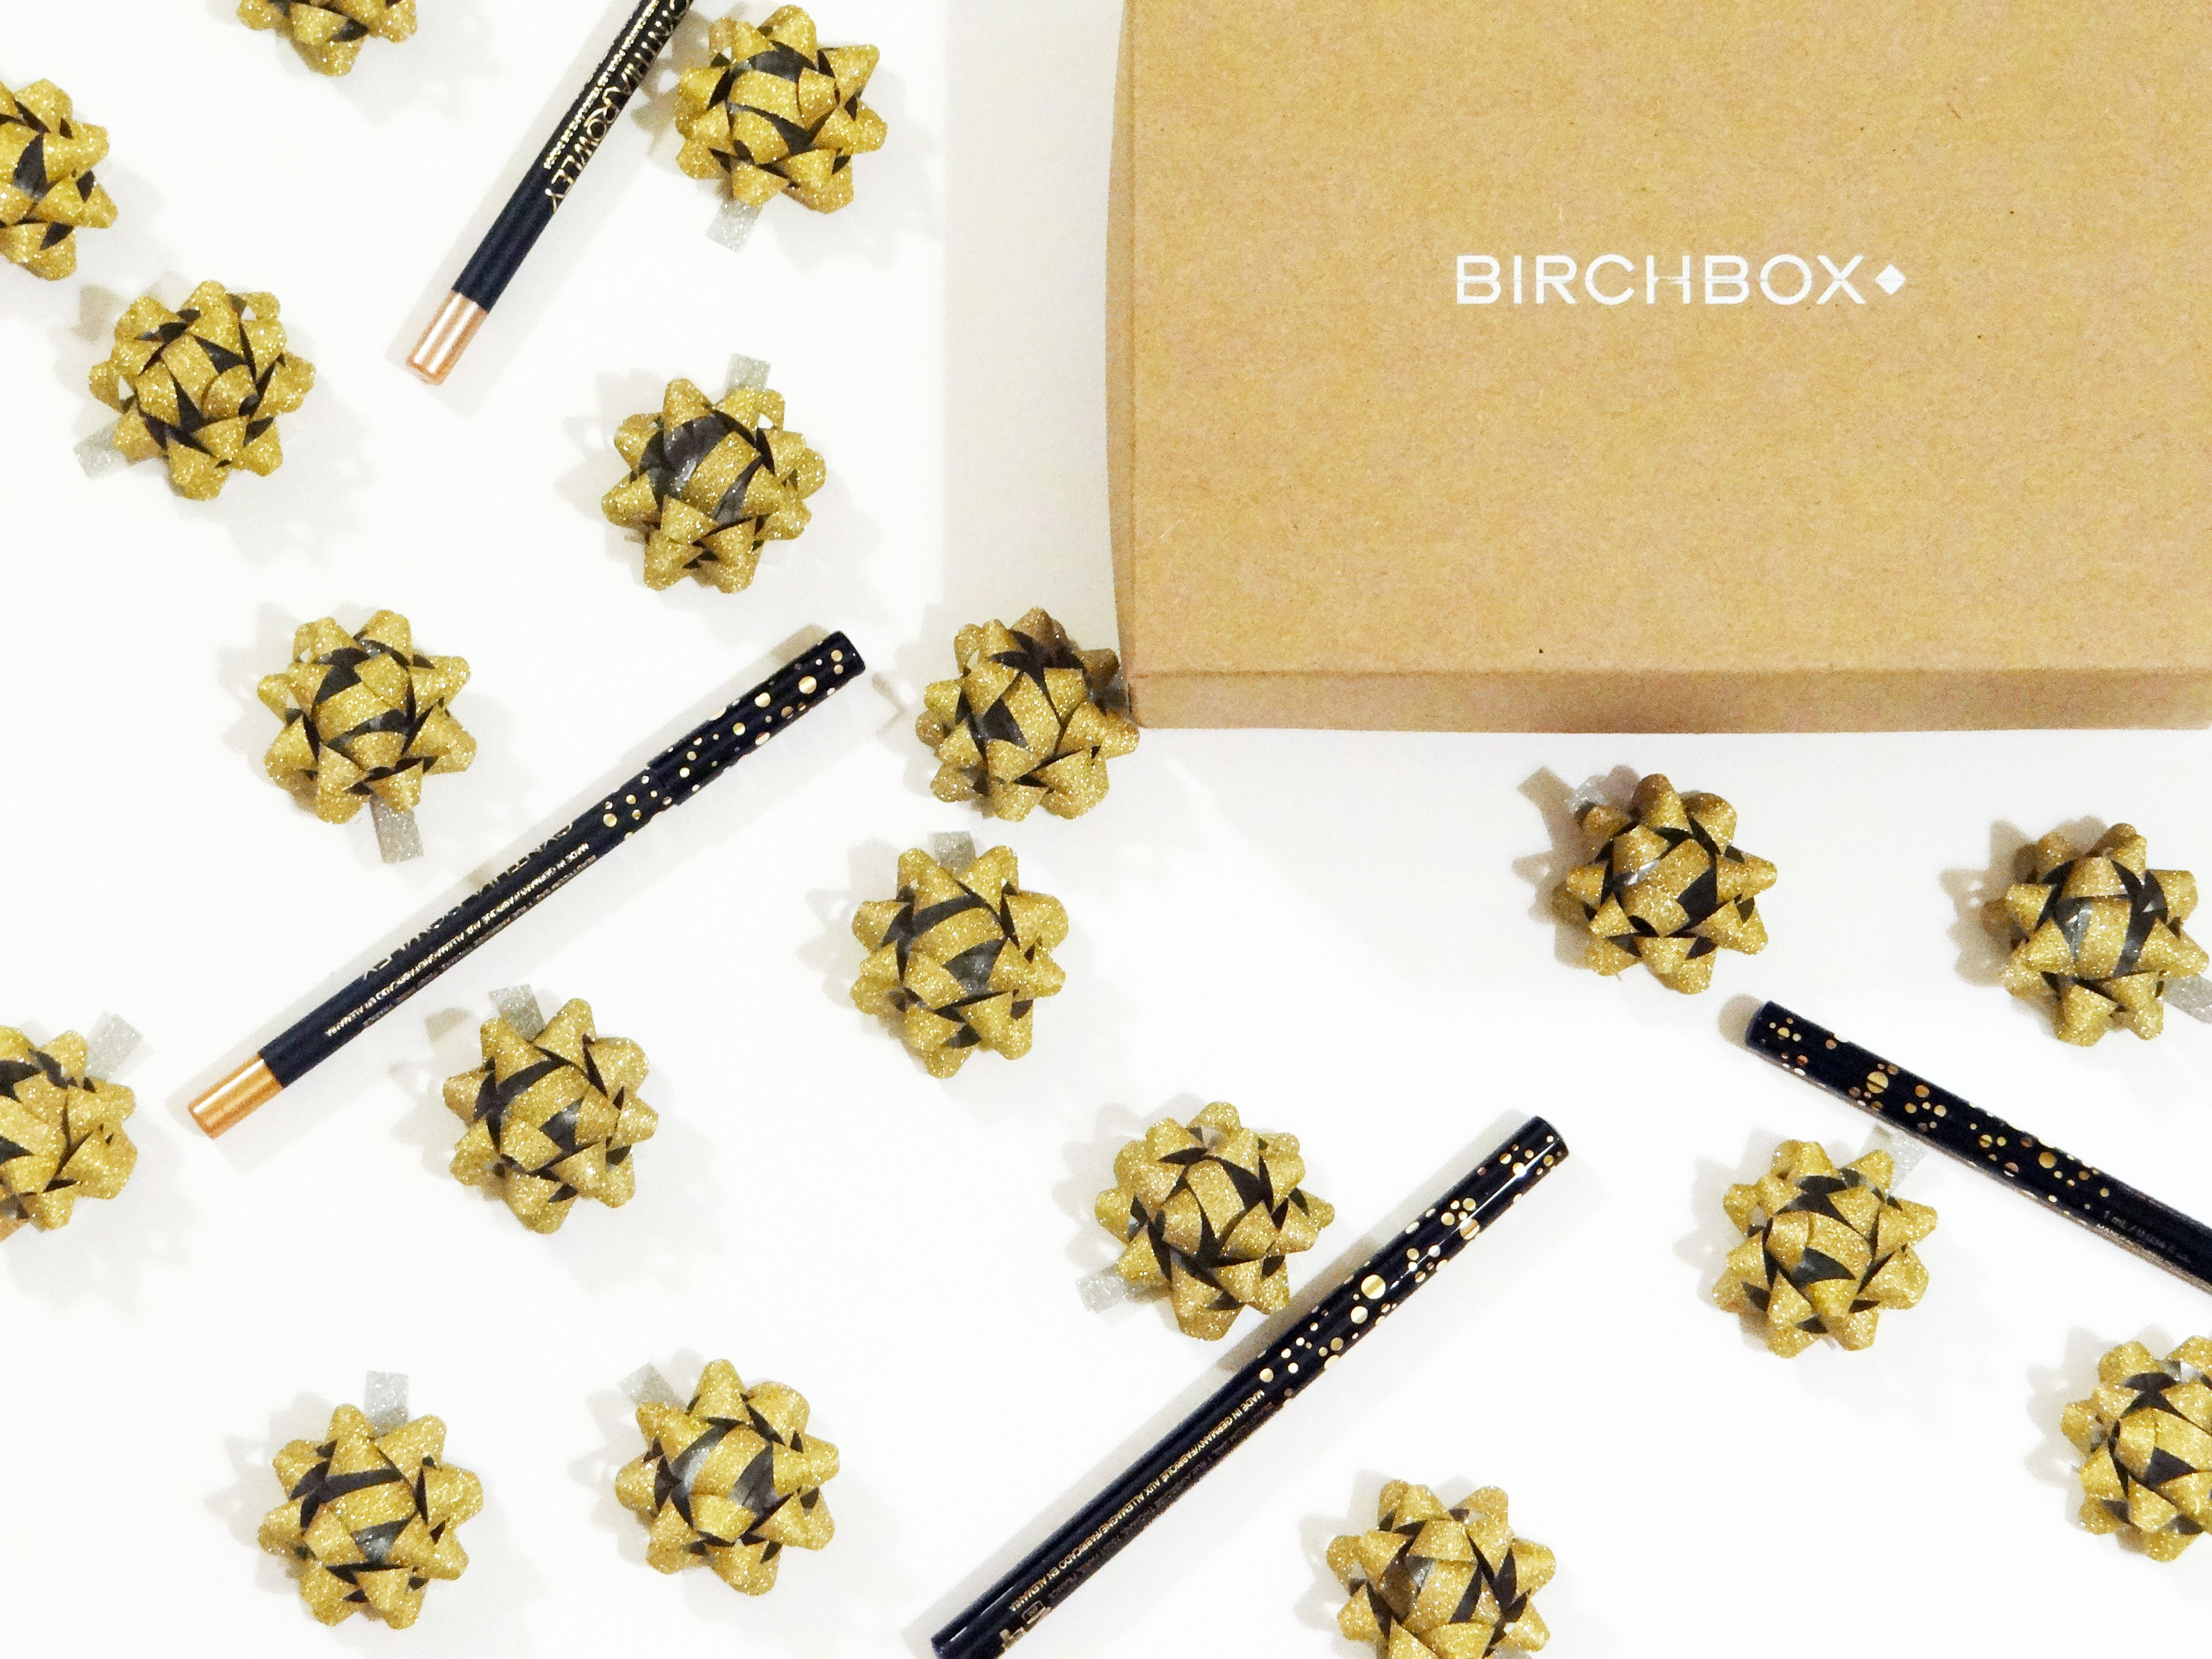 eye liner pencils, caitlin rowley makeup, holidays, christmas, gift ideas, holiday gifts, christmas gift ideas, gifts for her, Beauty, Make up, subscription box, birchbox, beauty box